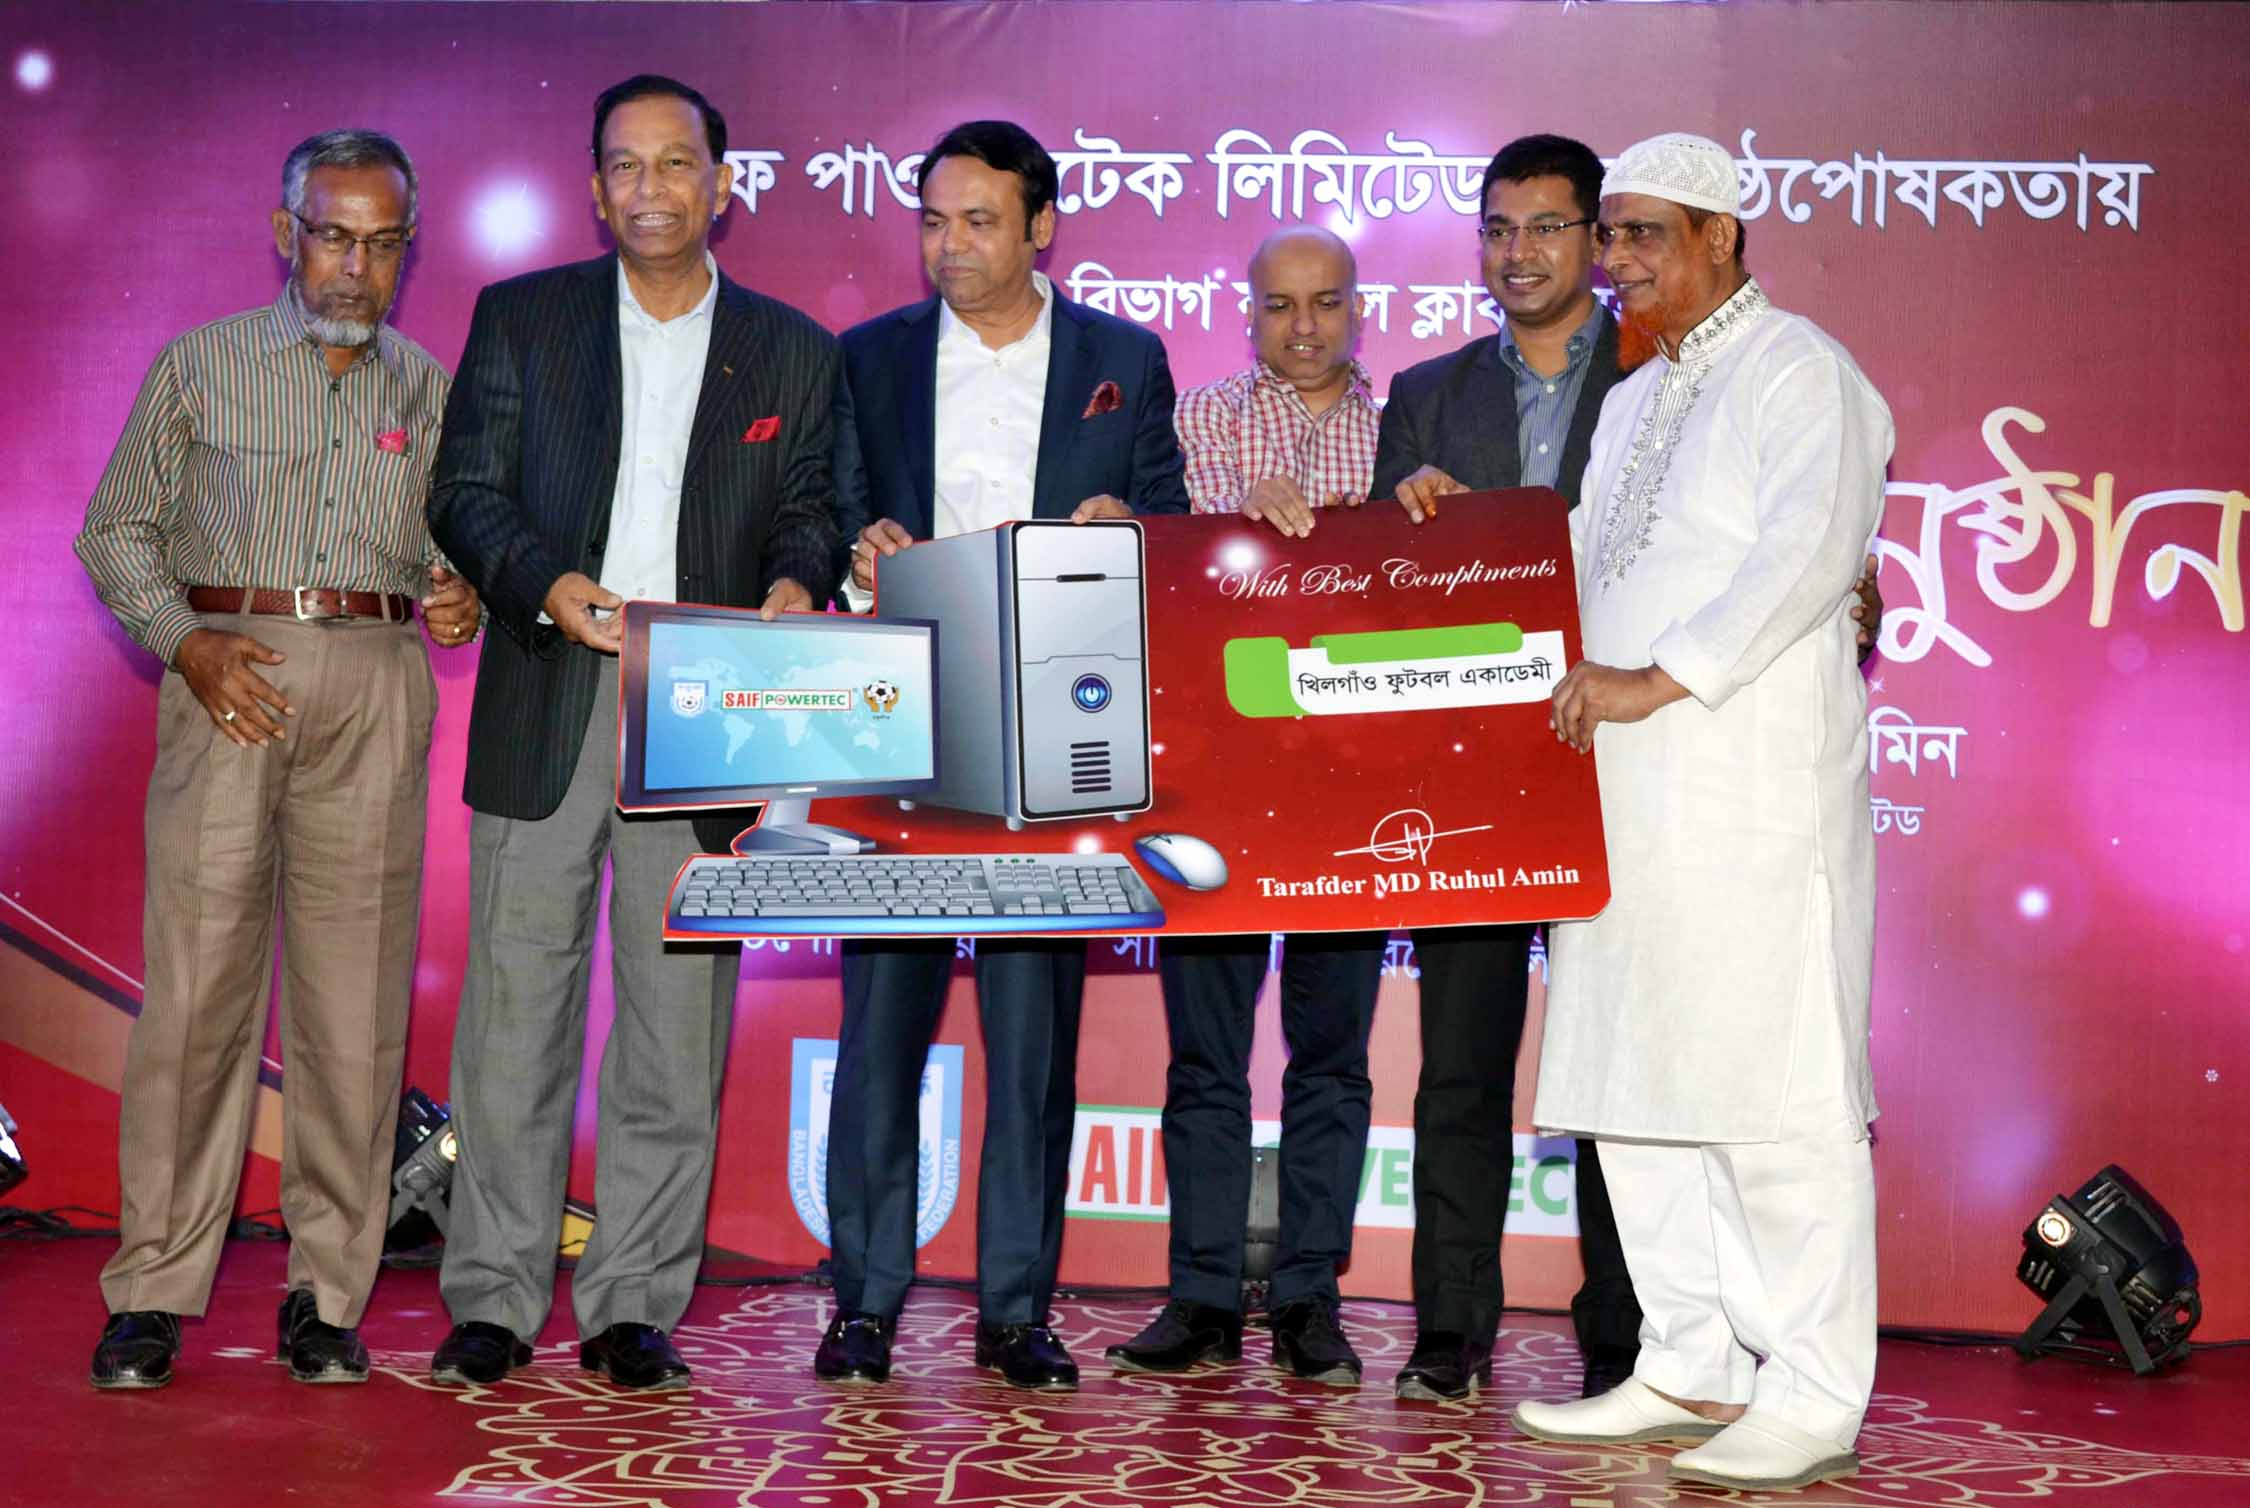 Secretary of Youth and Sports of Bangladesh Awami League Harunur Rashid (second from the left) and Chairman of the Saif Powertec Limited Tarafder Md Ruhul Amin (third from the left) distribute the computer to a representative of the Dhaka Metropolis Third Division Football League at Dhaka Metropolis Football League Committee conference room in the Bangabandhu National Stadium on Monday.